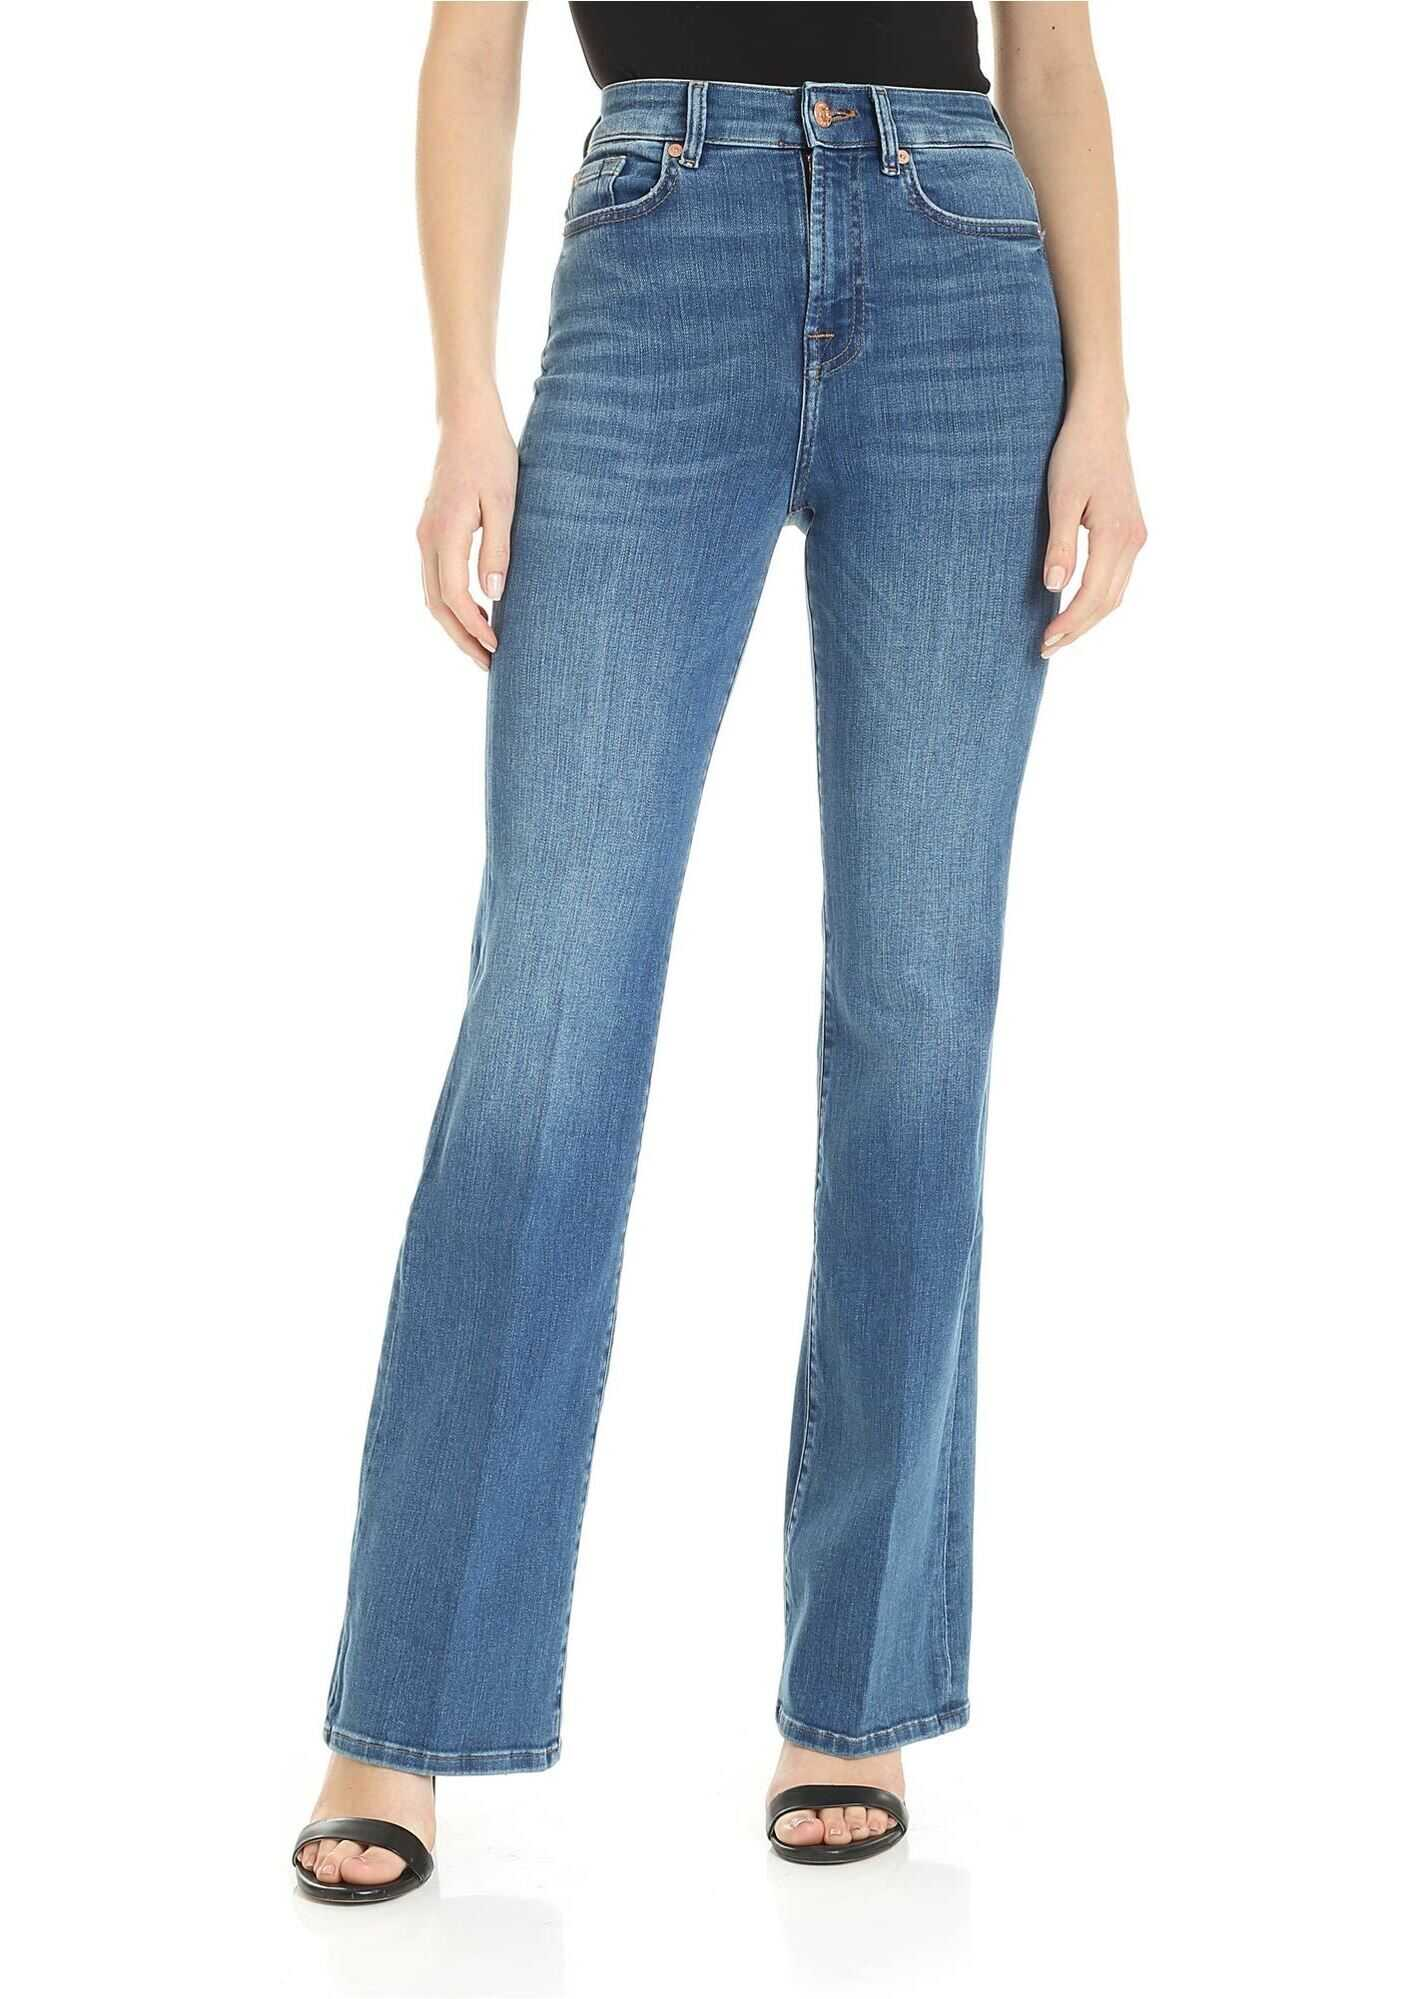 Lisha Slim Illusion Posessed Jeans In Blue thumbnail